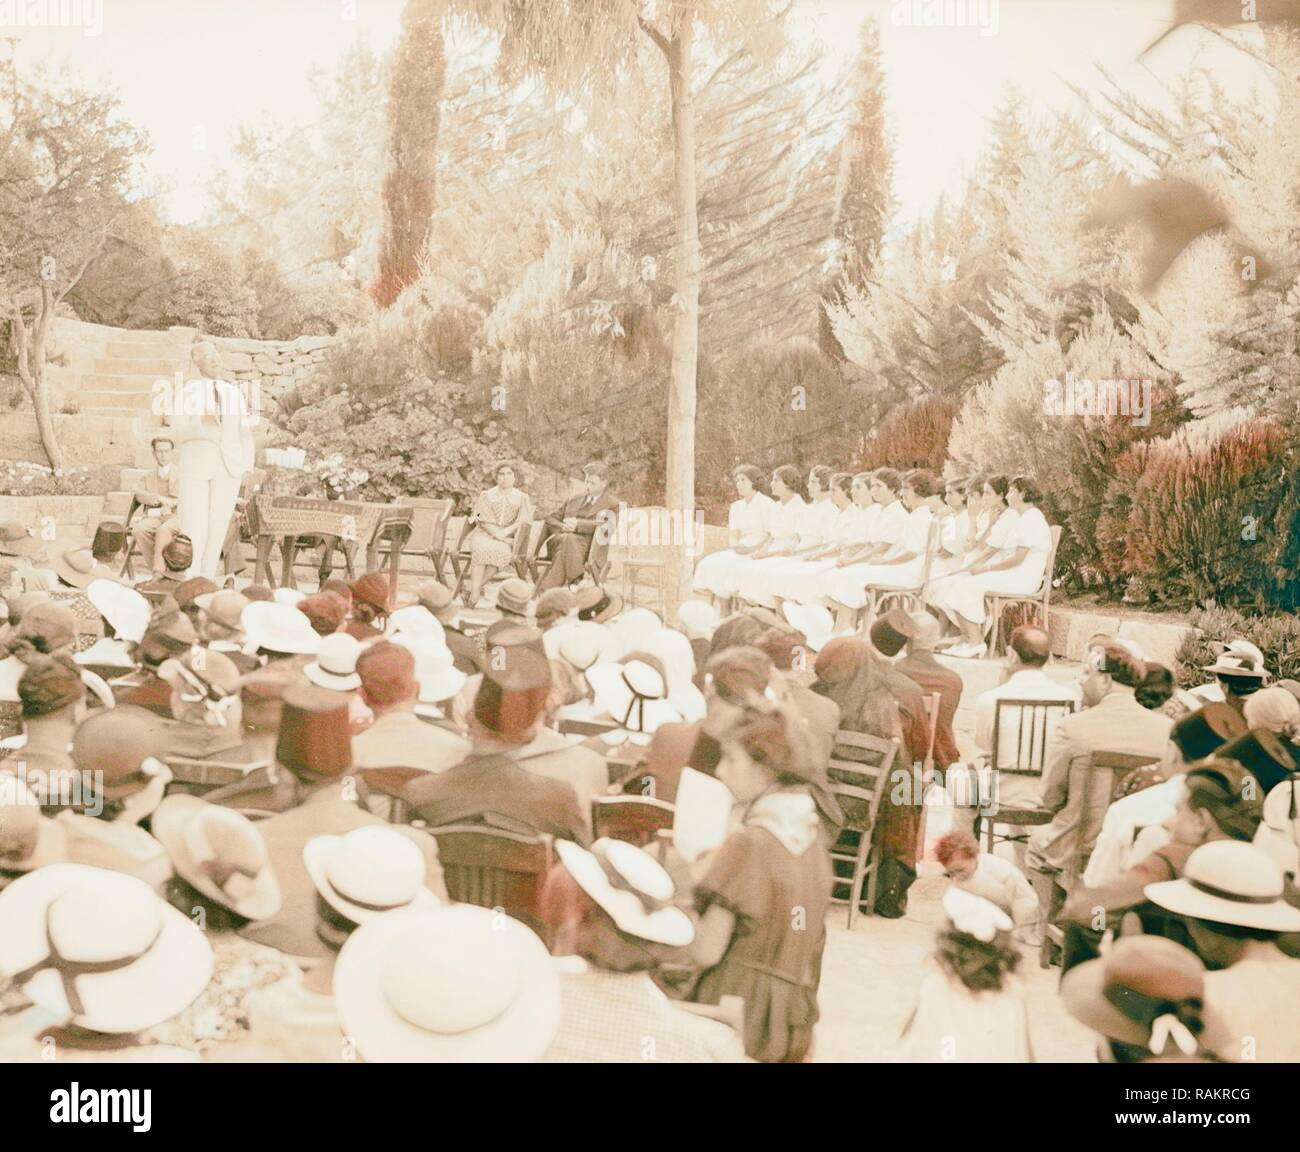 Ramallah Quaker Mission School photographed in 1937. 1937, West Bank, Rām Allāh. Reimagined by Gibon. Classic art reimagined - Stock Image